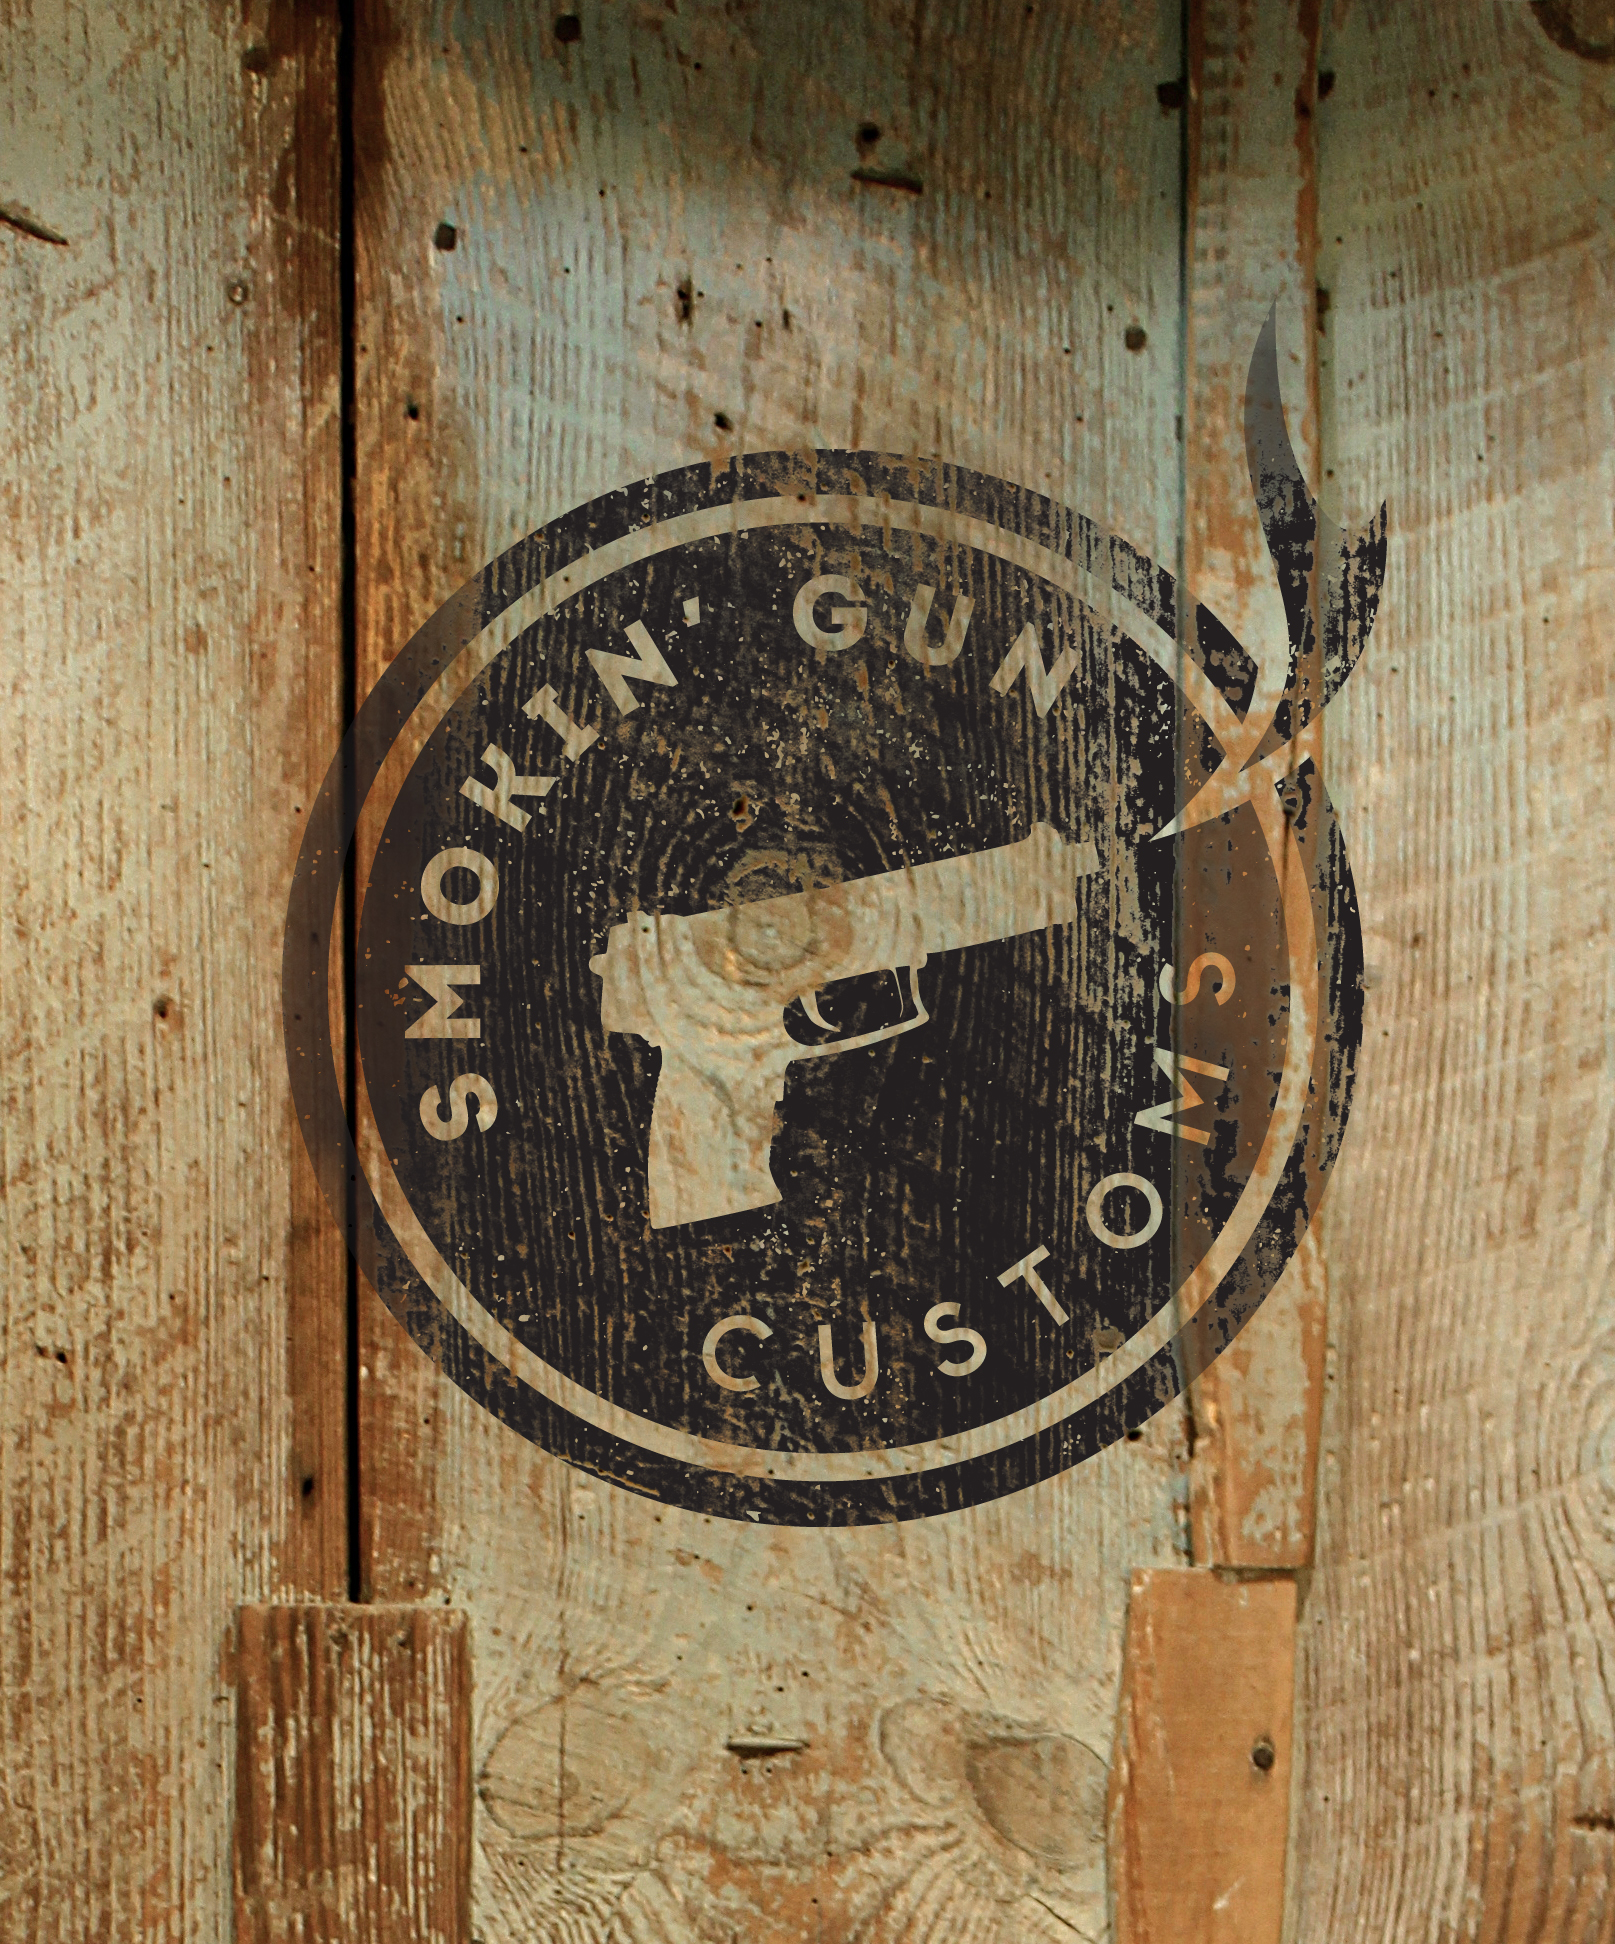 Smokin' Gun Customs Identity